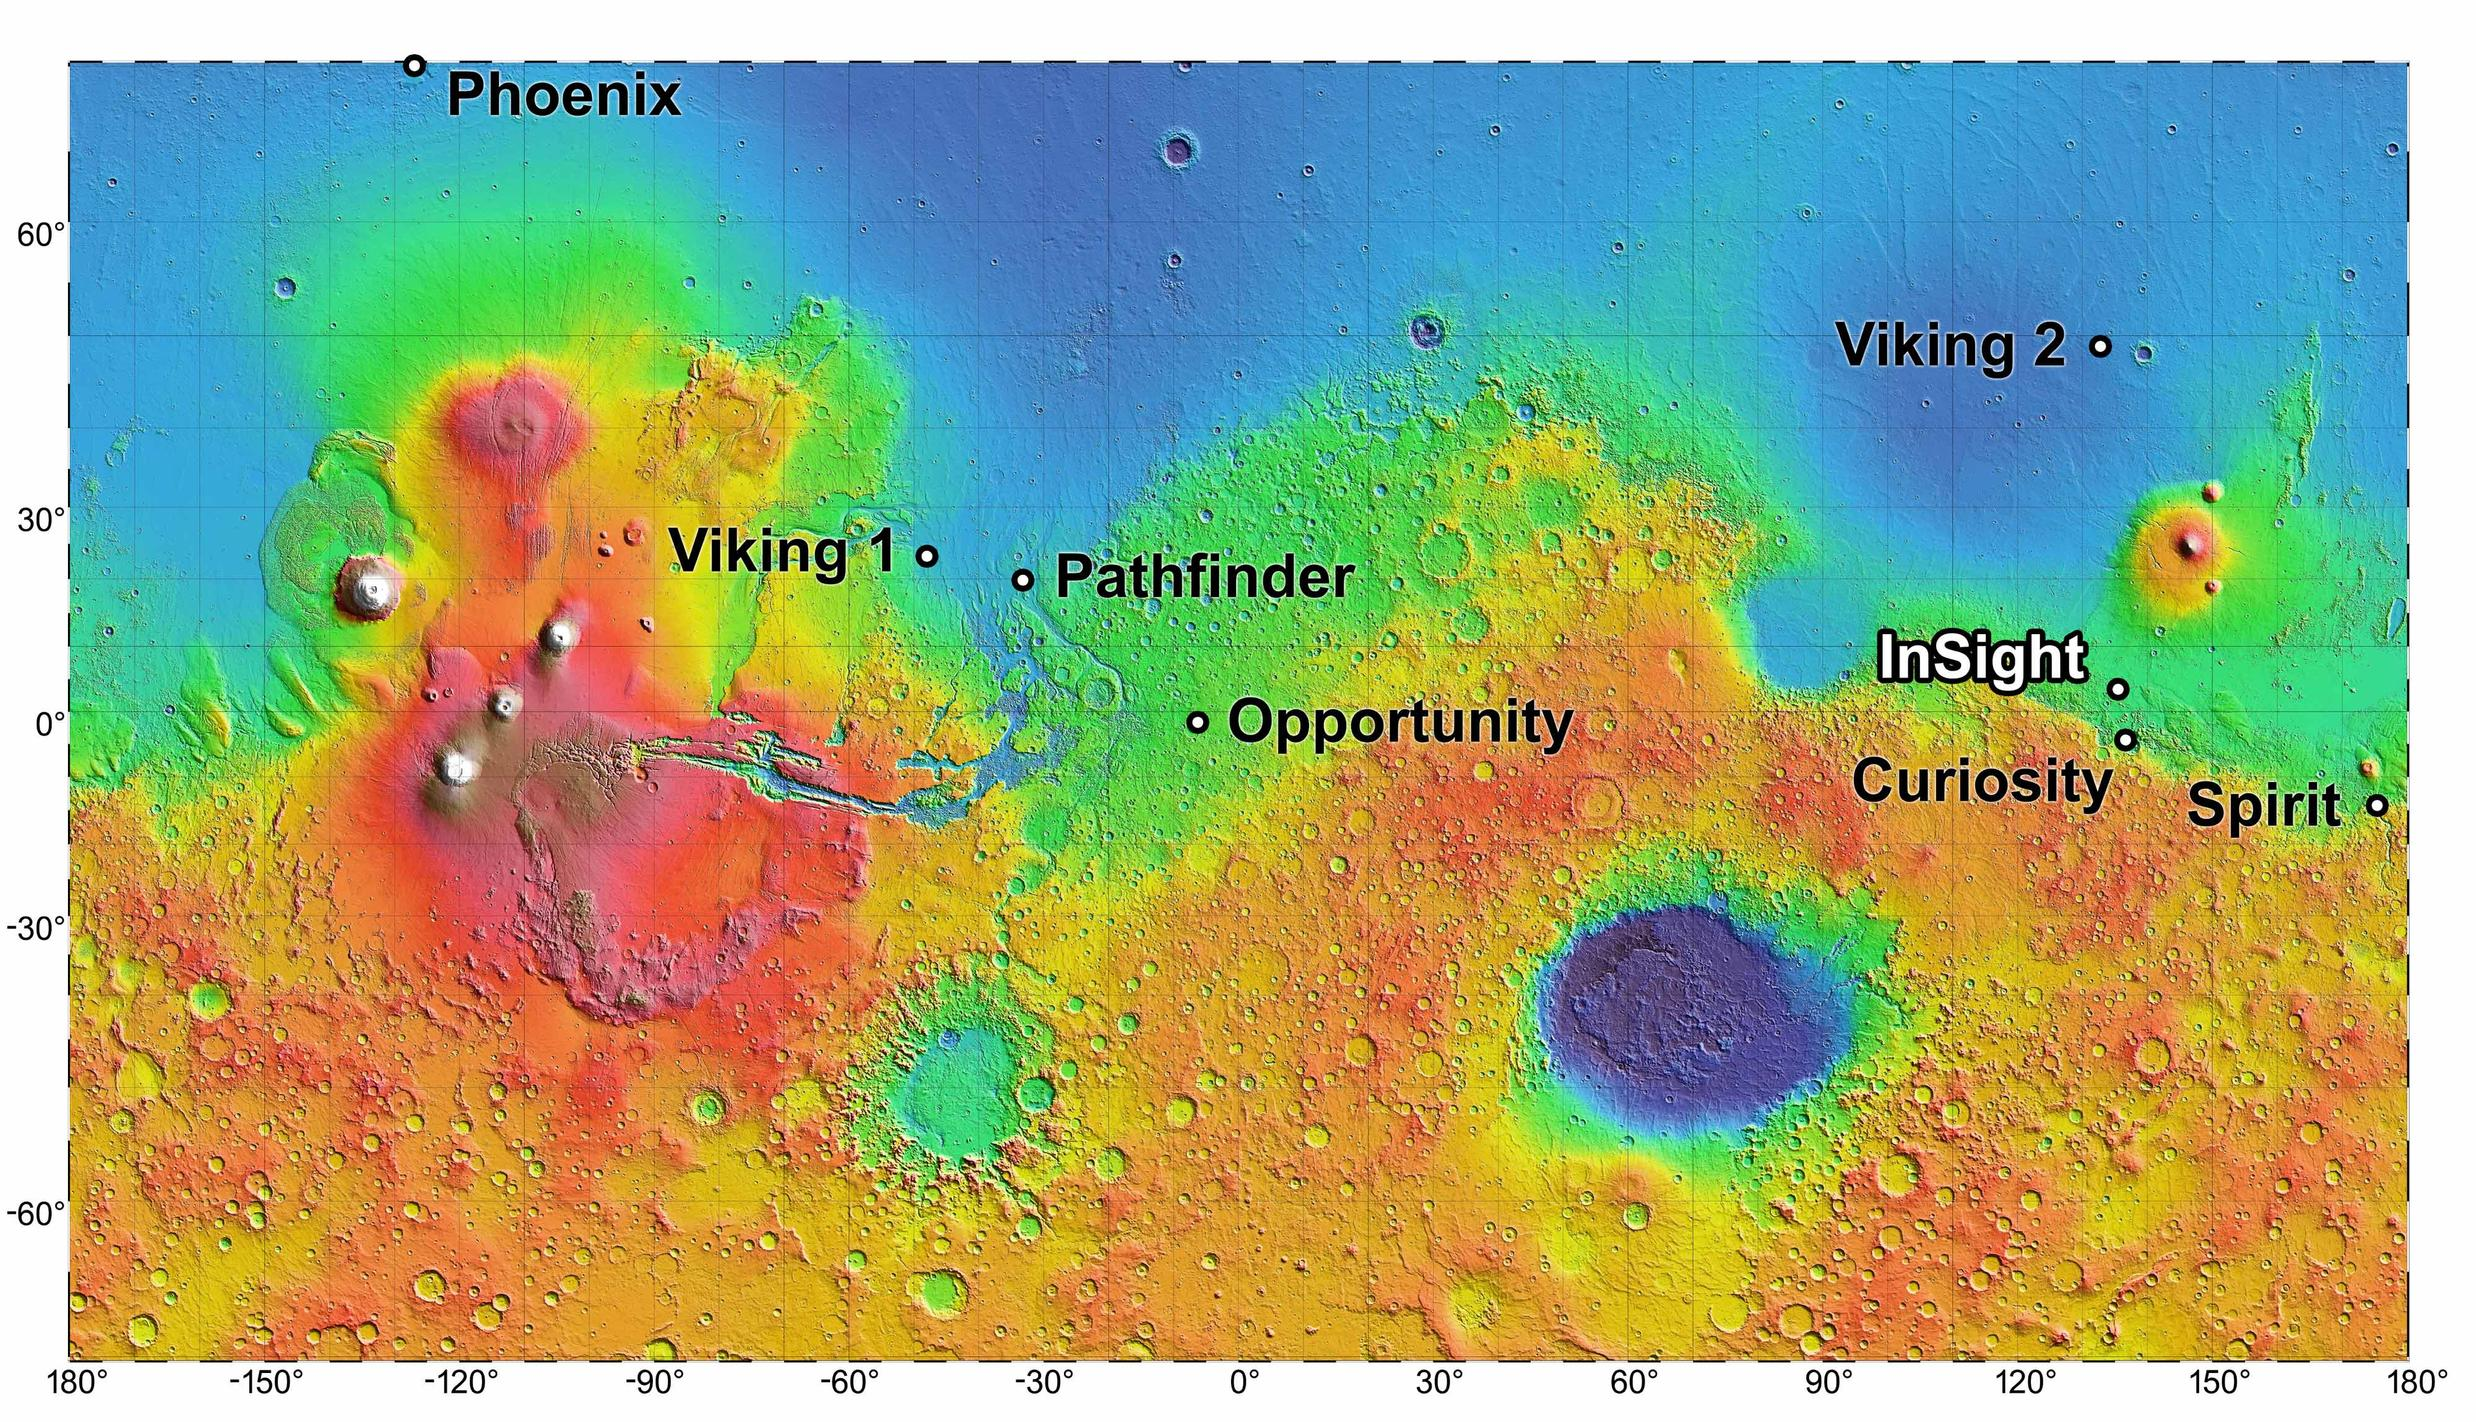 InSight and Other NASA Landing Sites